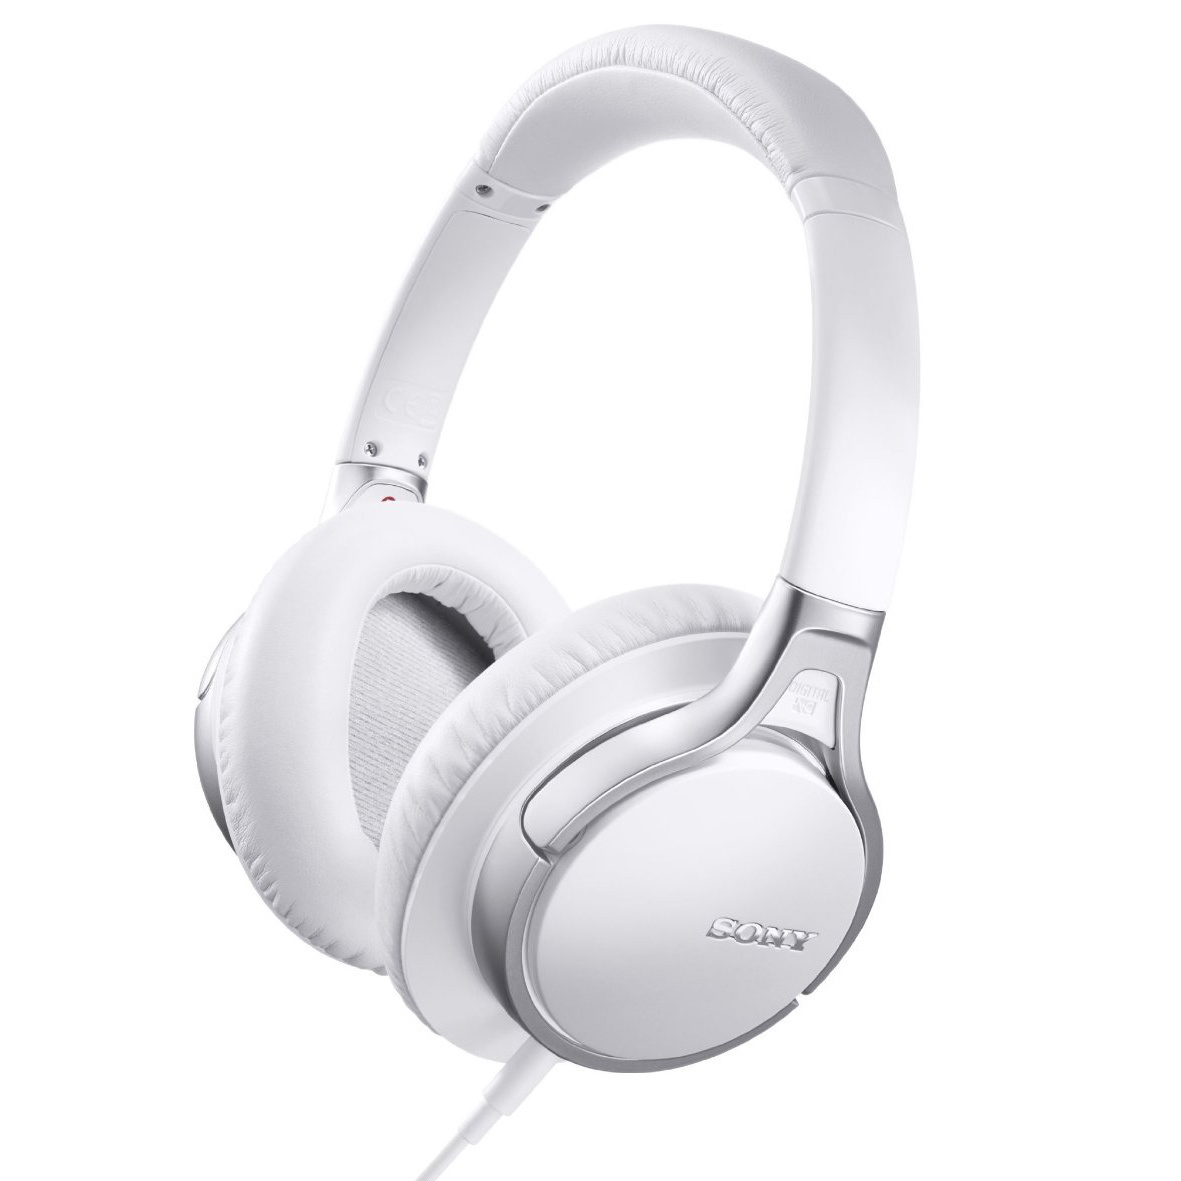 Sony iPad iPhone iPod Noise-Canceling Wired Headphones (White) by Sony